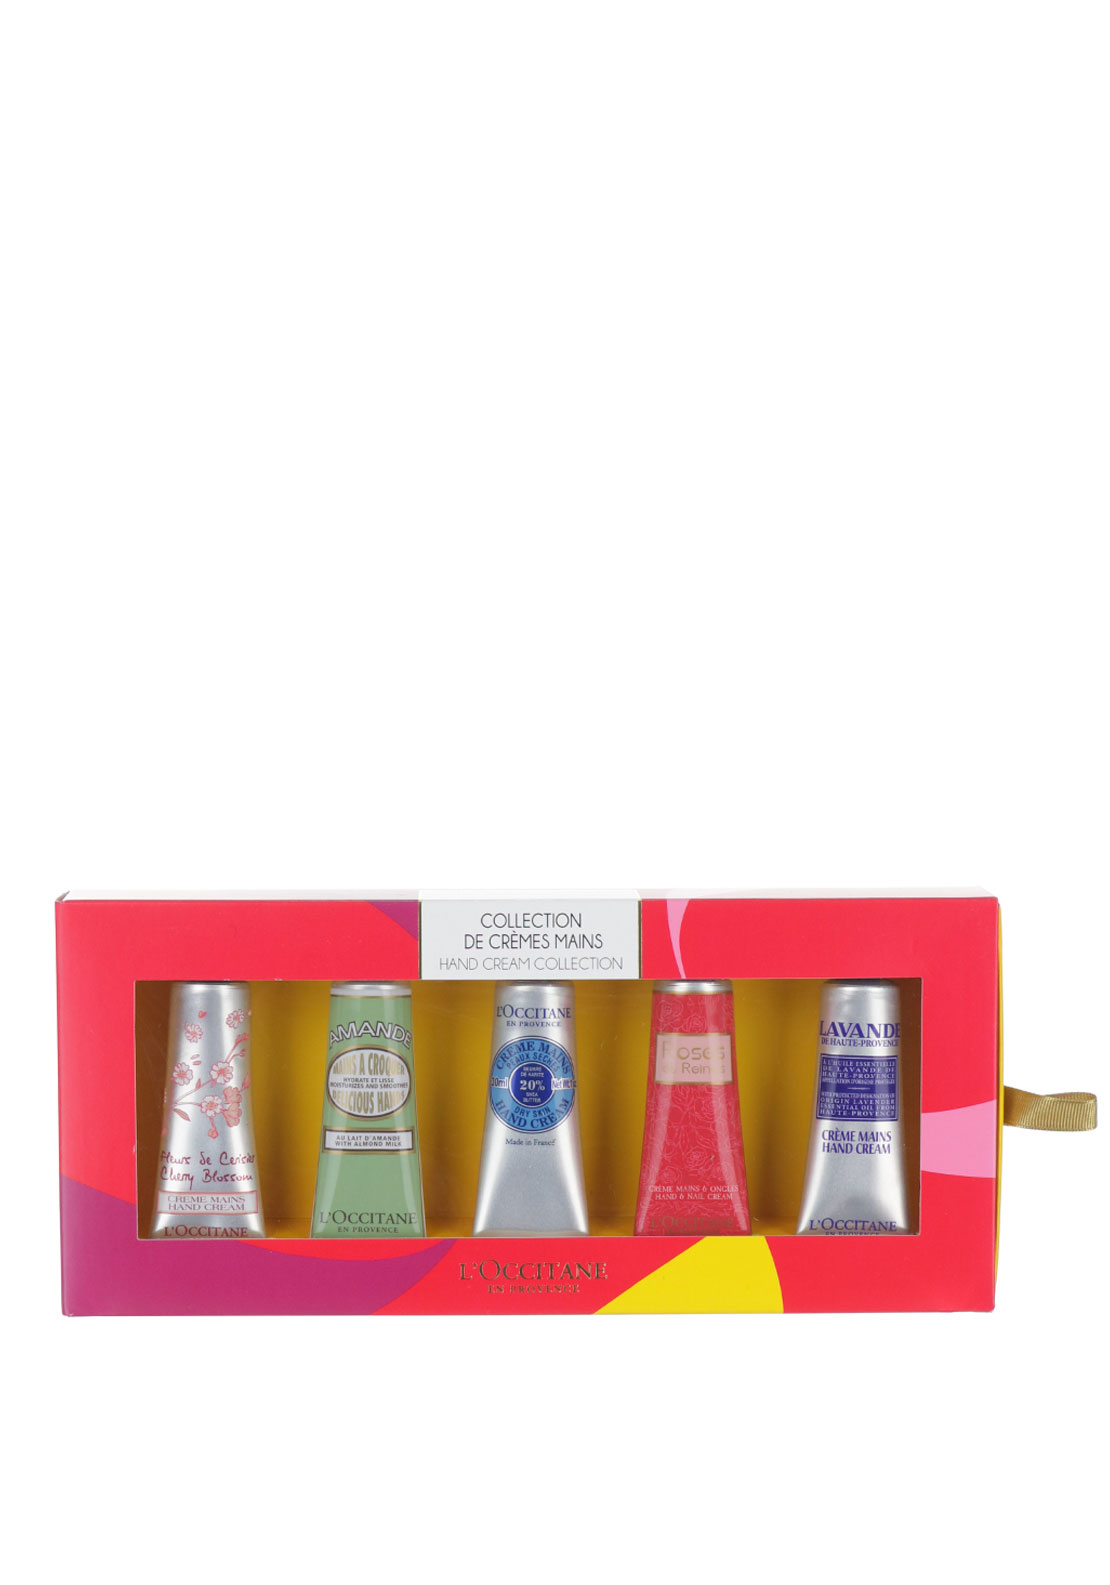 L'Occitane's en Provence Hand Cream Collection  Gift Set